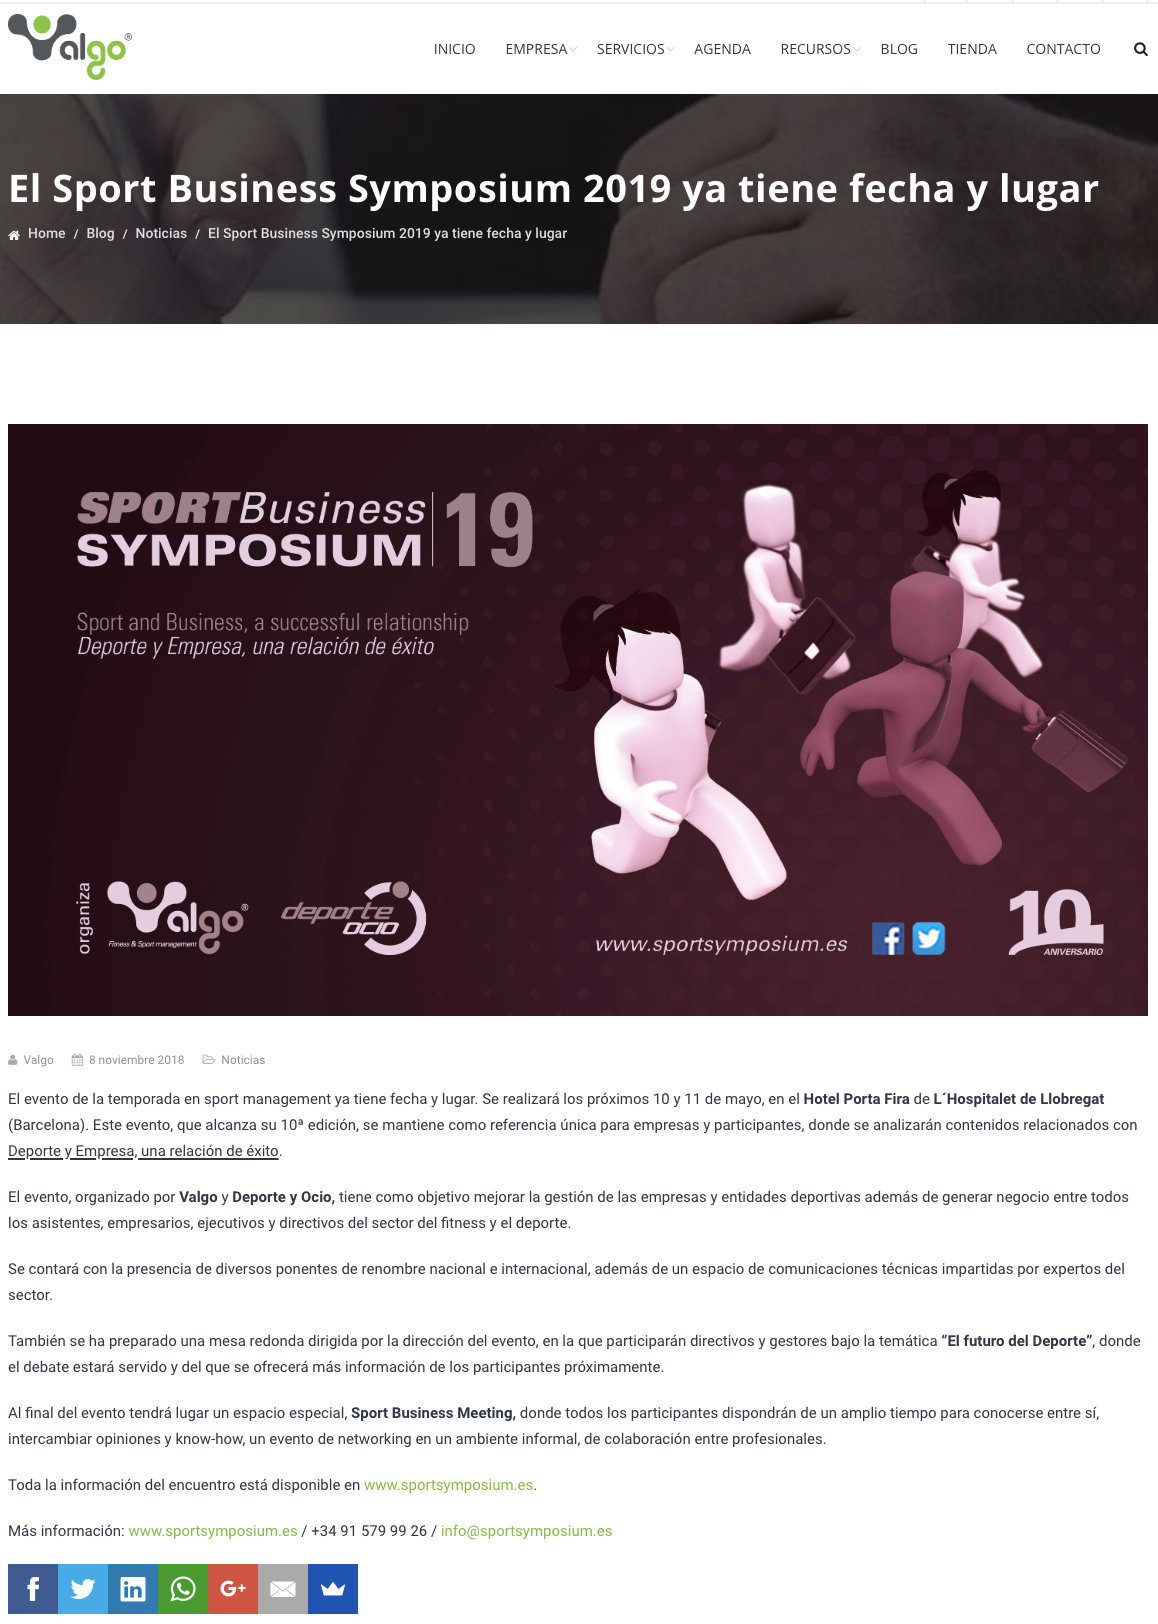 Sport Business Symposium 2019